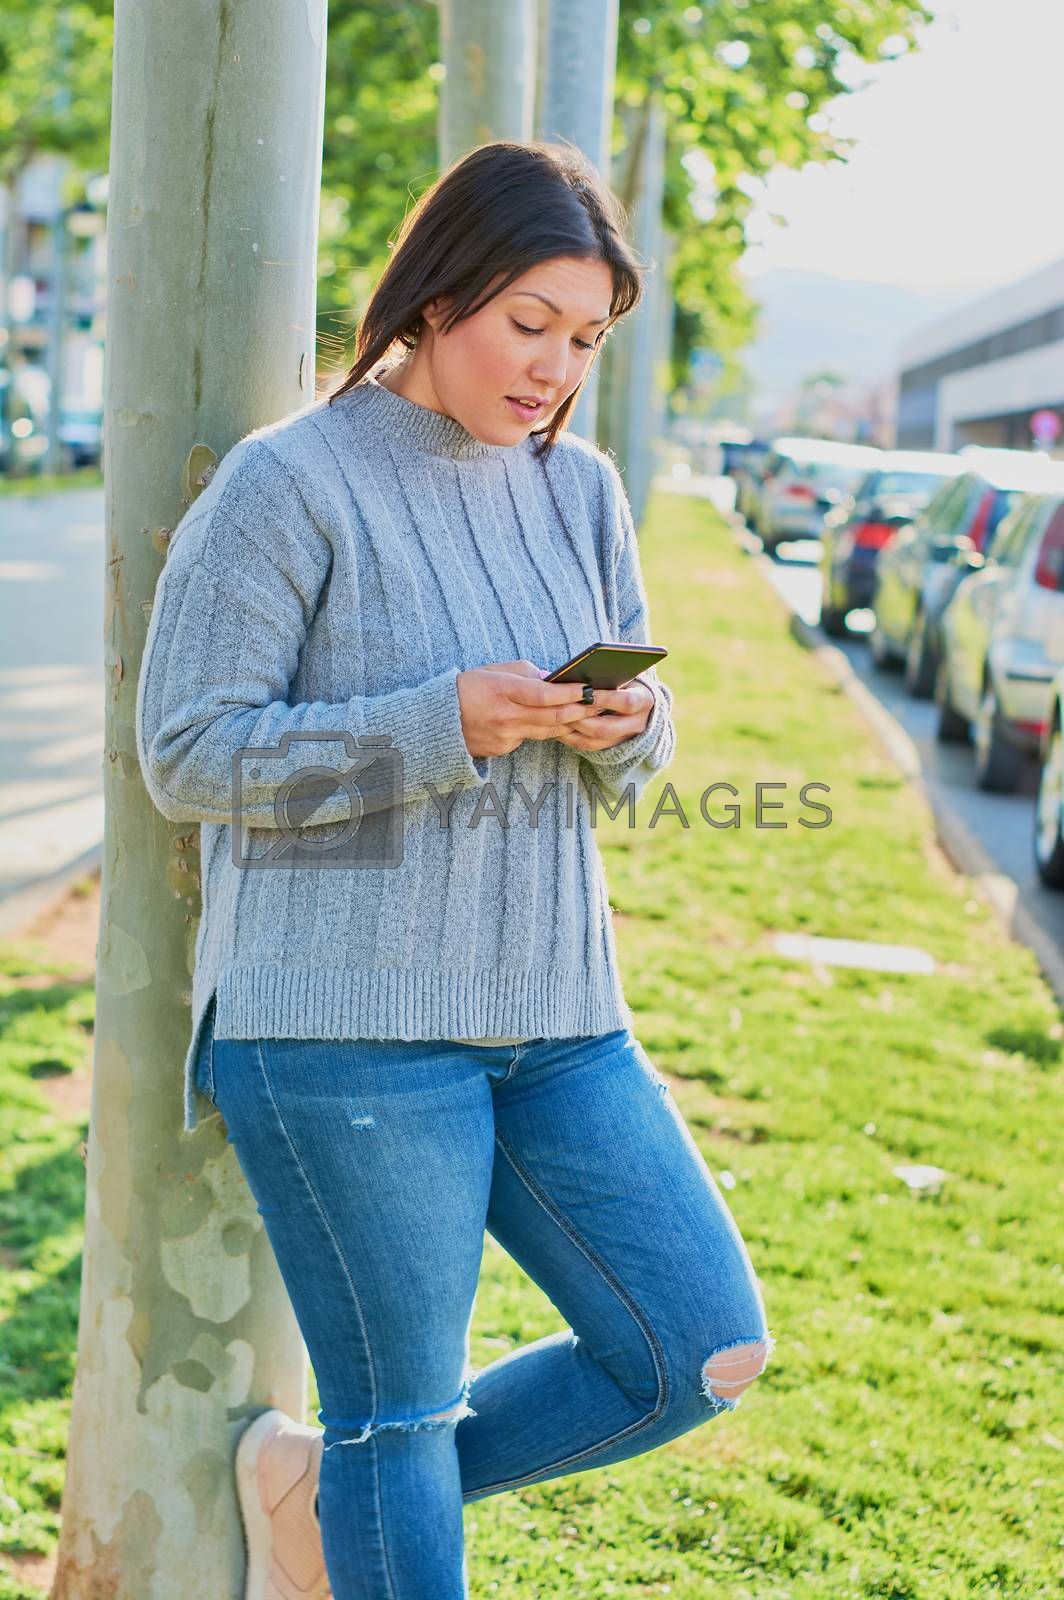 young girl talking on smartphone and typing messages with smartphone